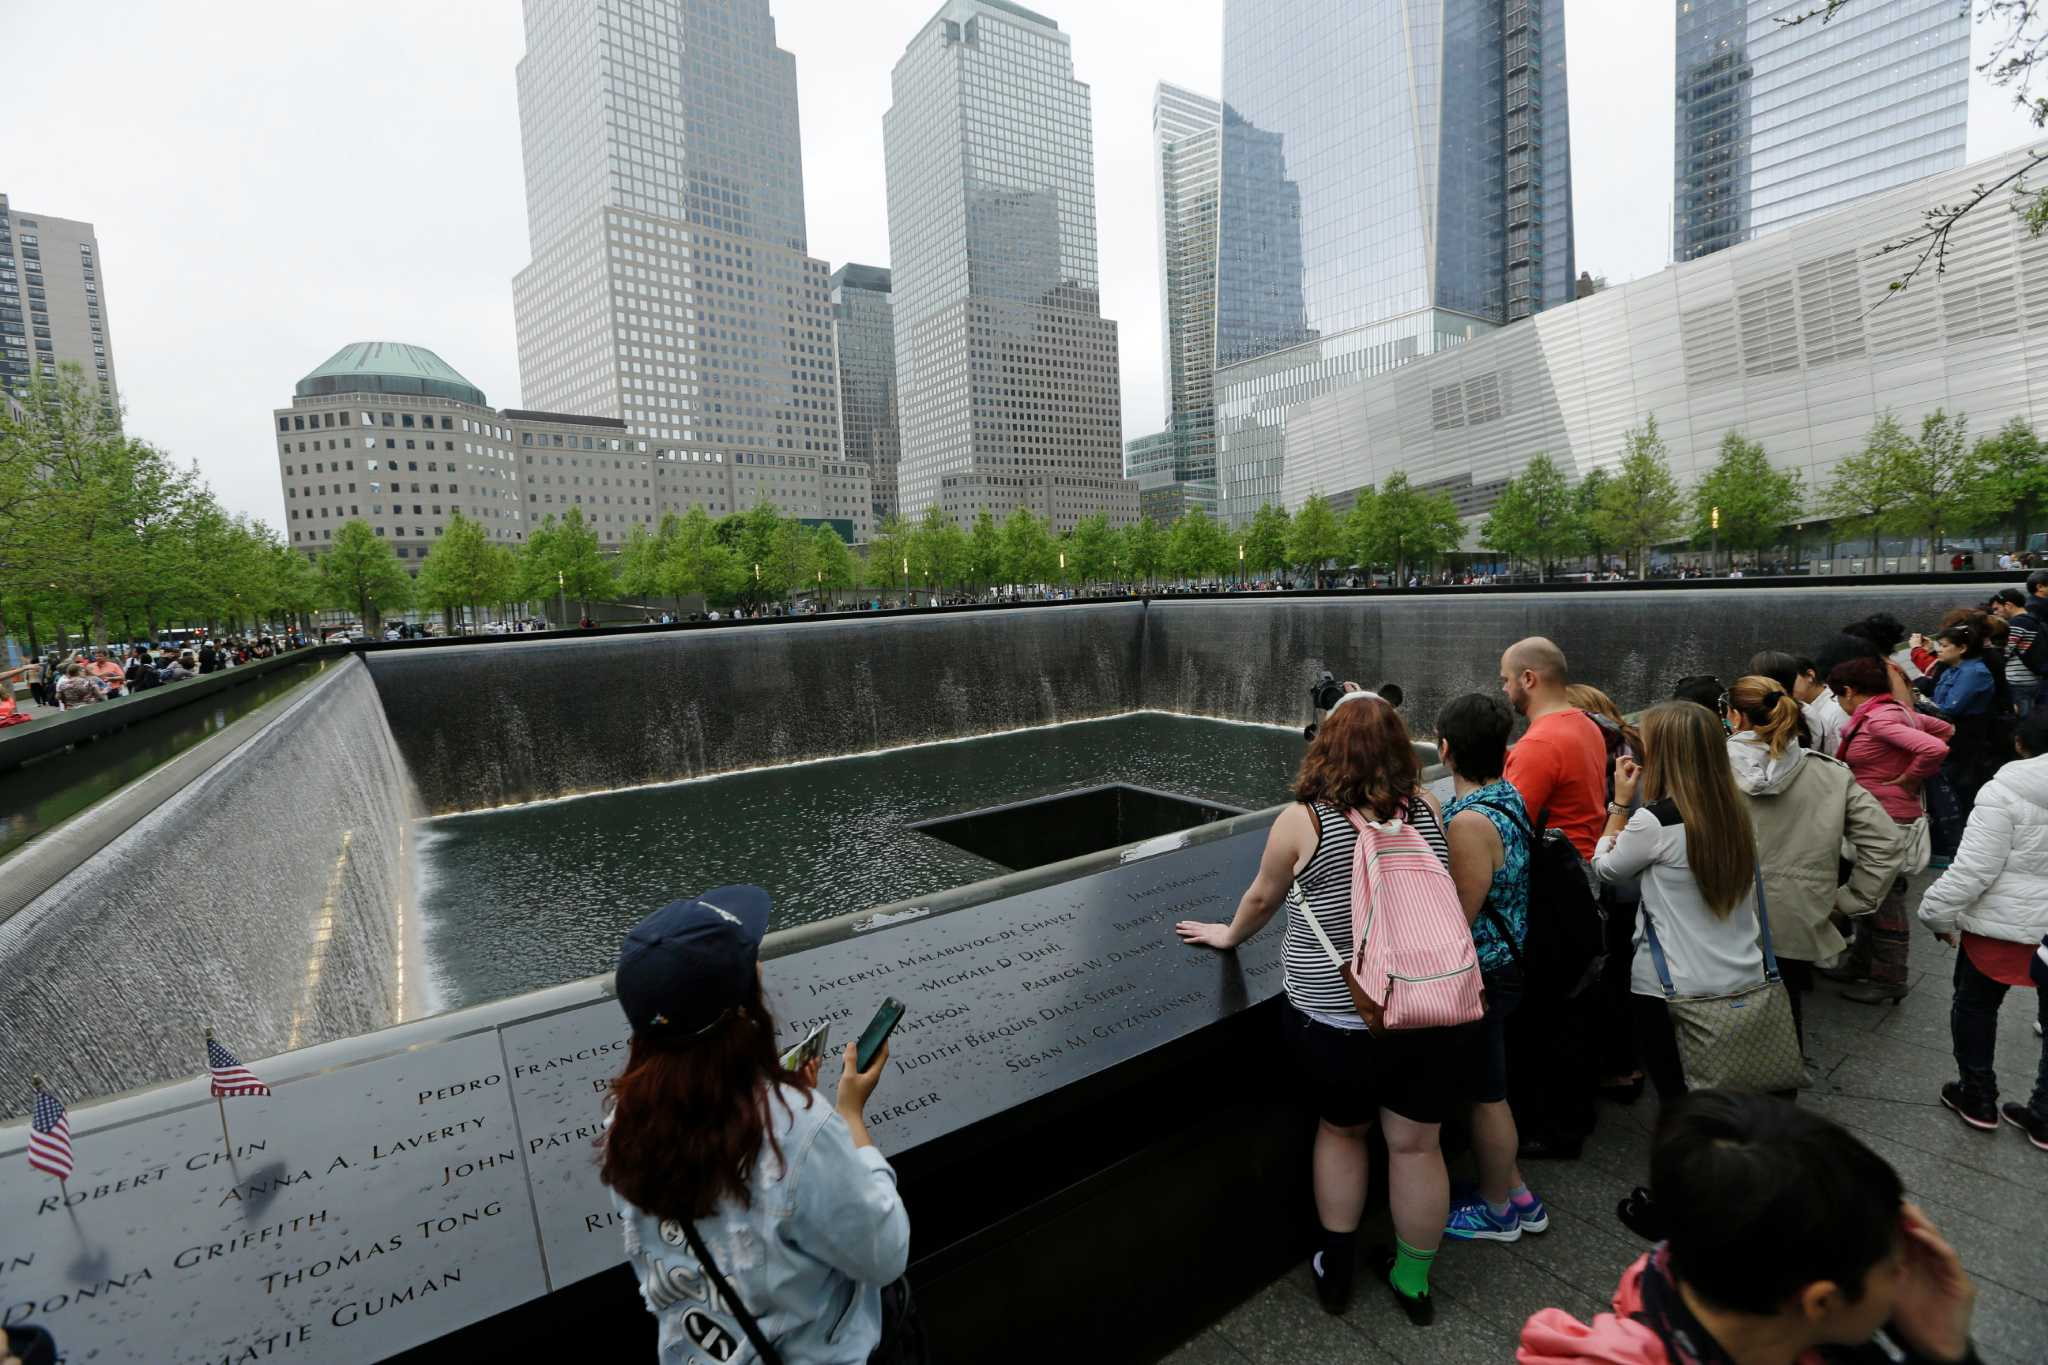 On 15th anniversary of 9/11, Lower Manhattan seeing a robust